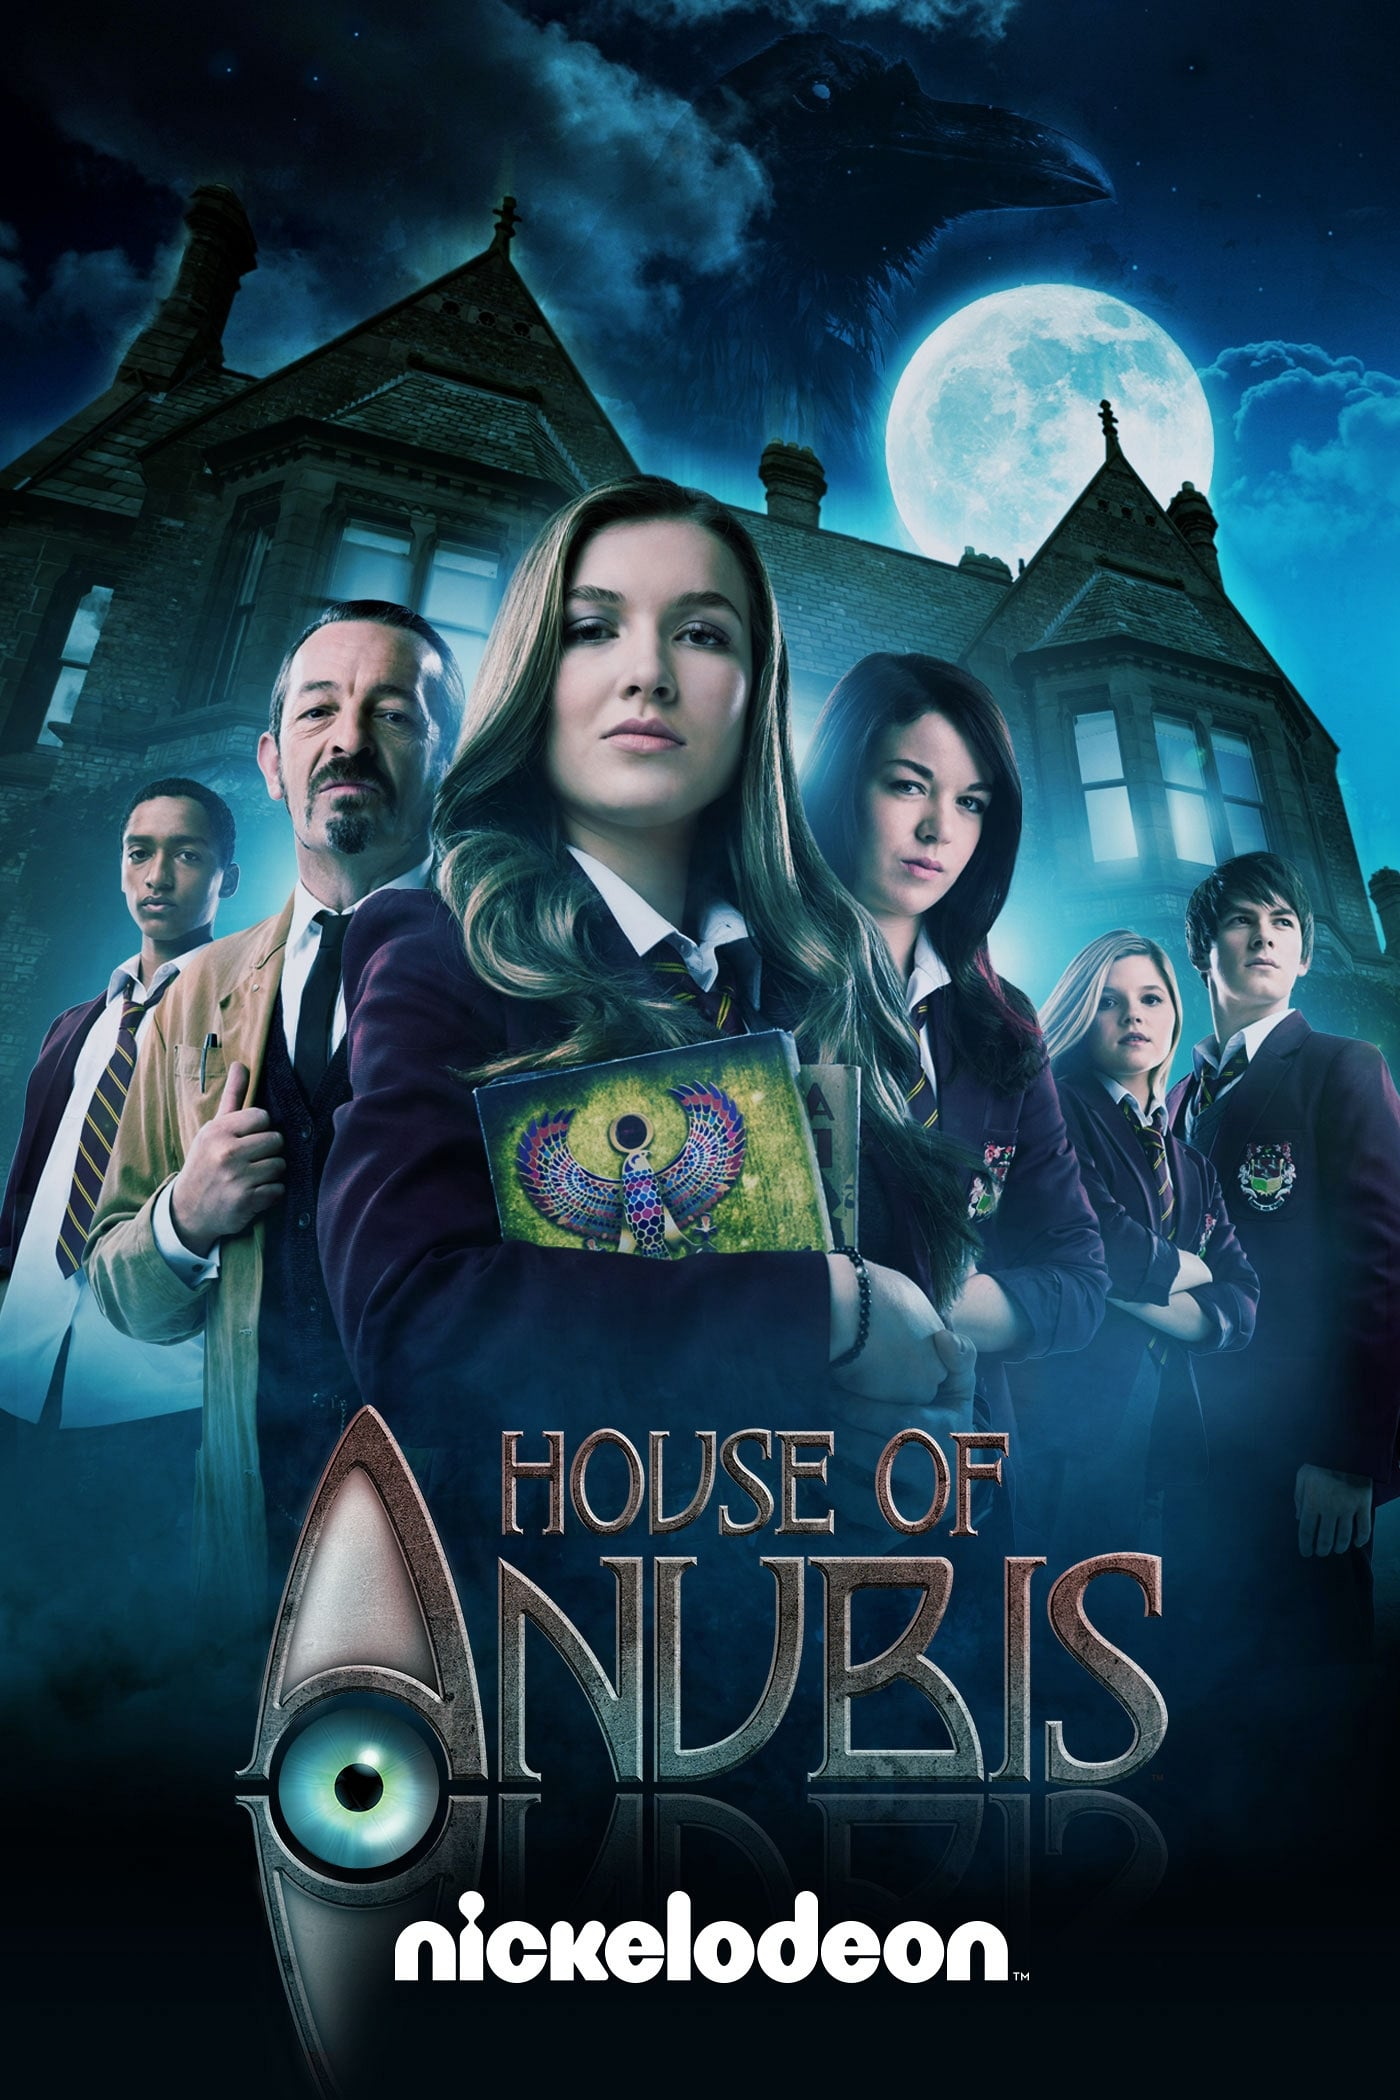 House of Anubis (2011)